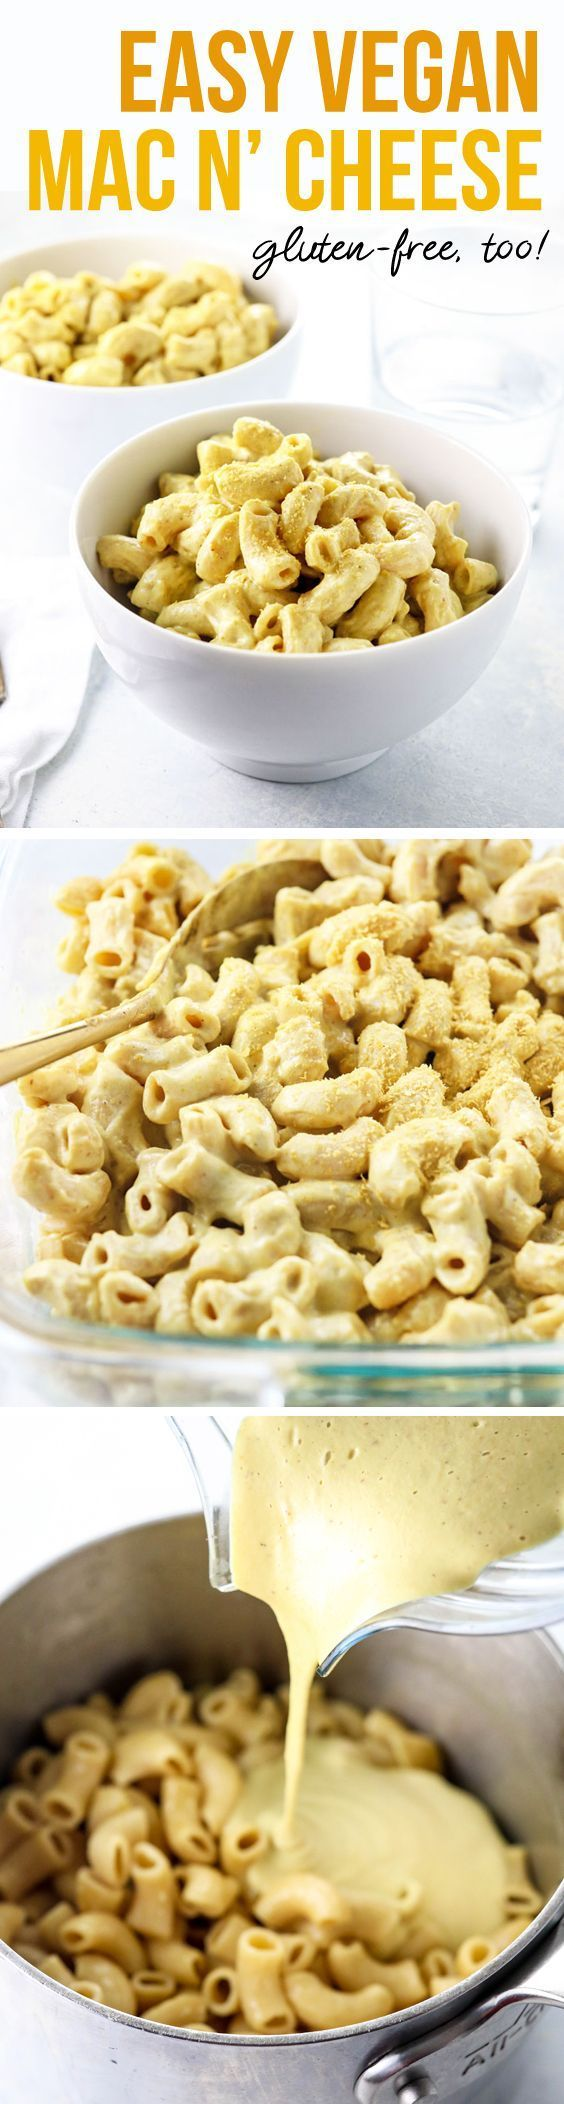 The Best Vegan Mac And Cheese A Fan Favorite Detoxinista Recipe Vegan Thanksgiving Recipes Dairy Free Dinner Dairy Free